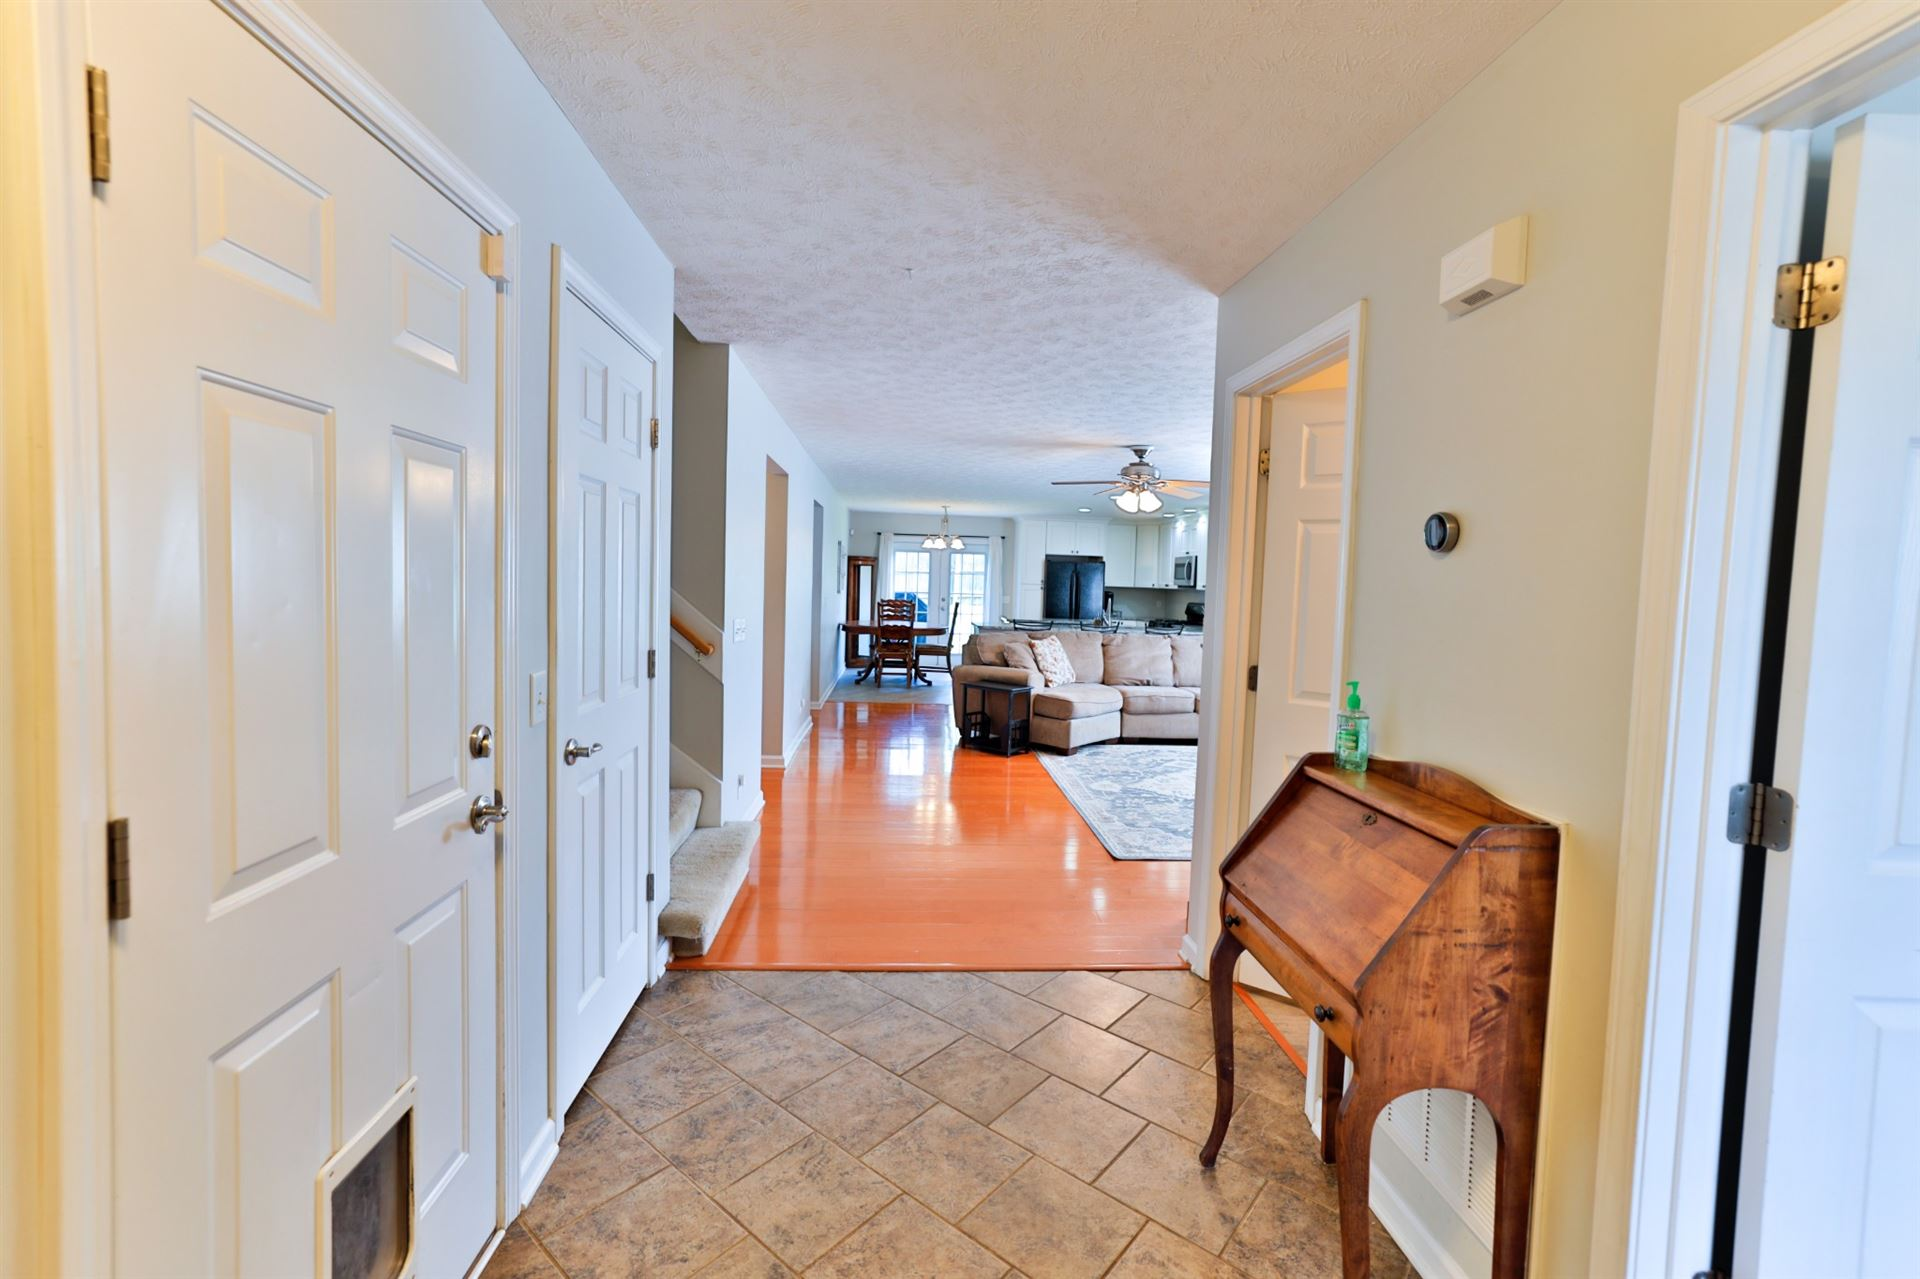 Photo of 106 Coolmore Ct, Spring Hill, TN 37174 (MLS # 2136557)